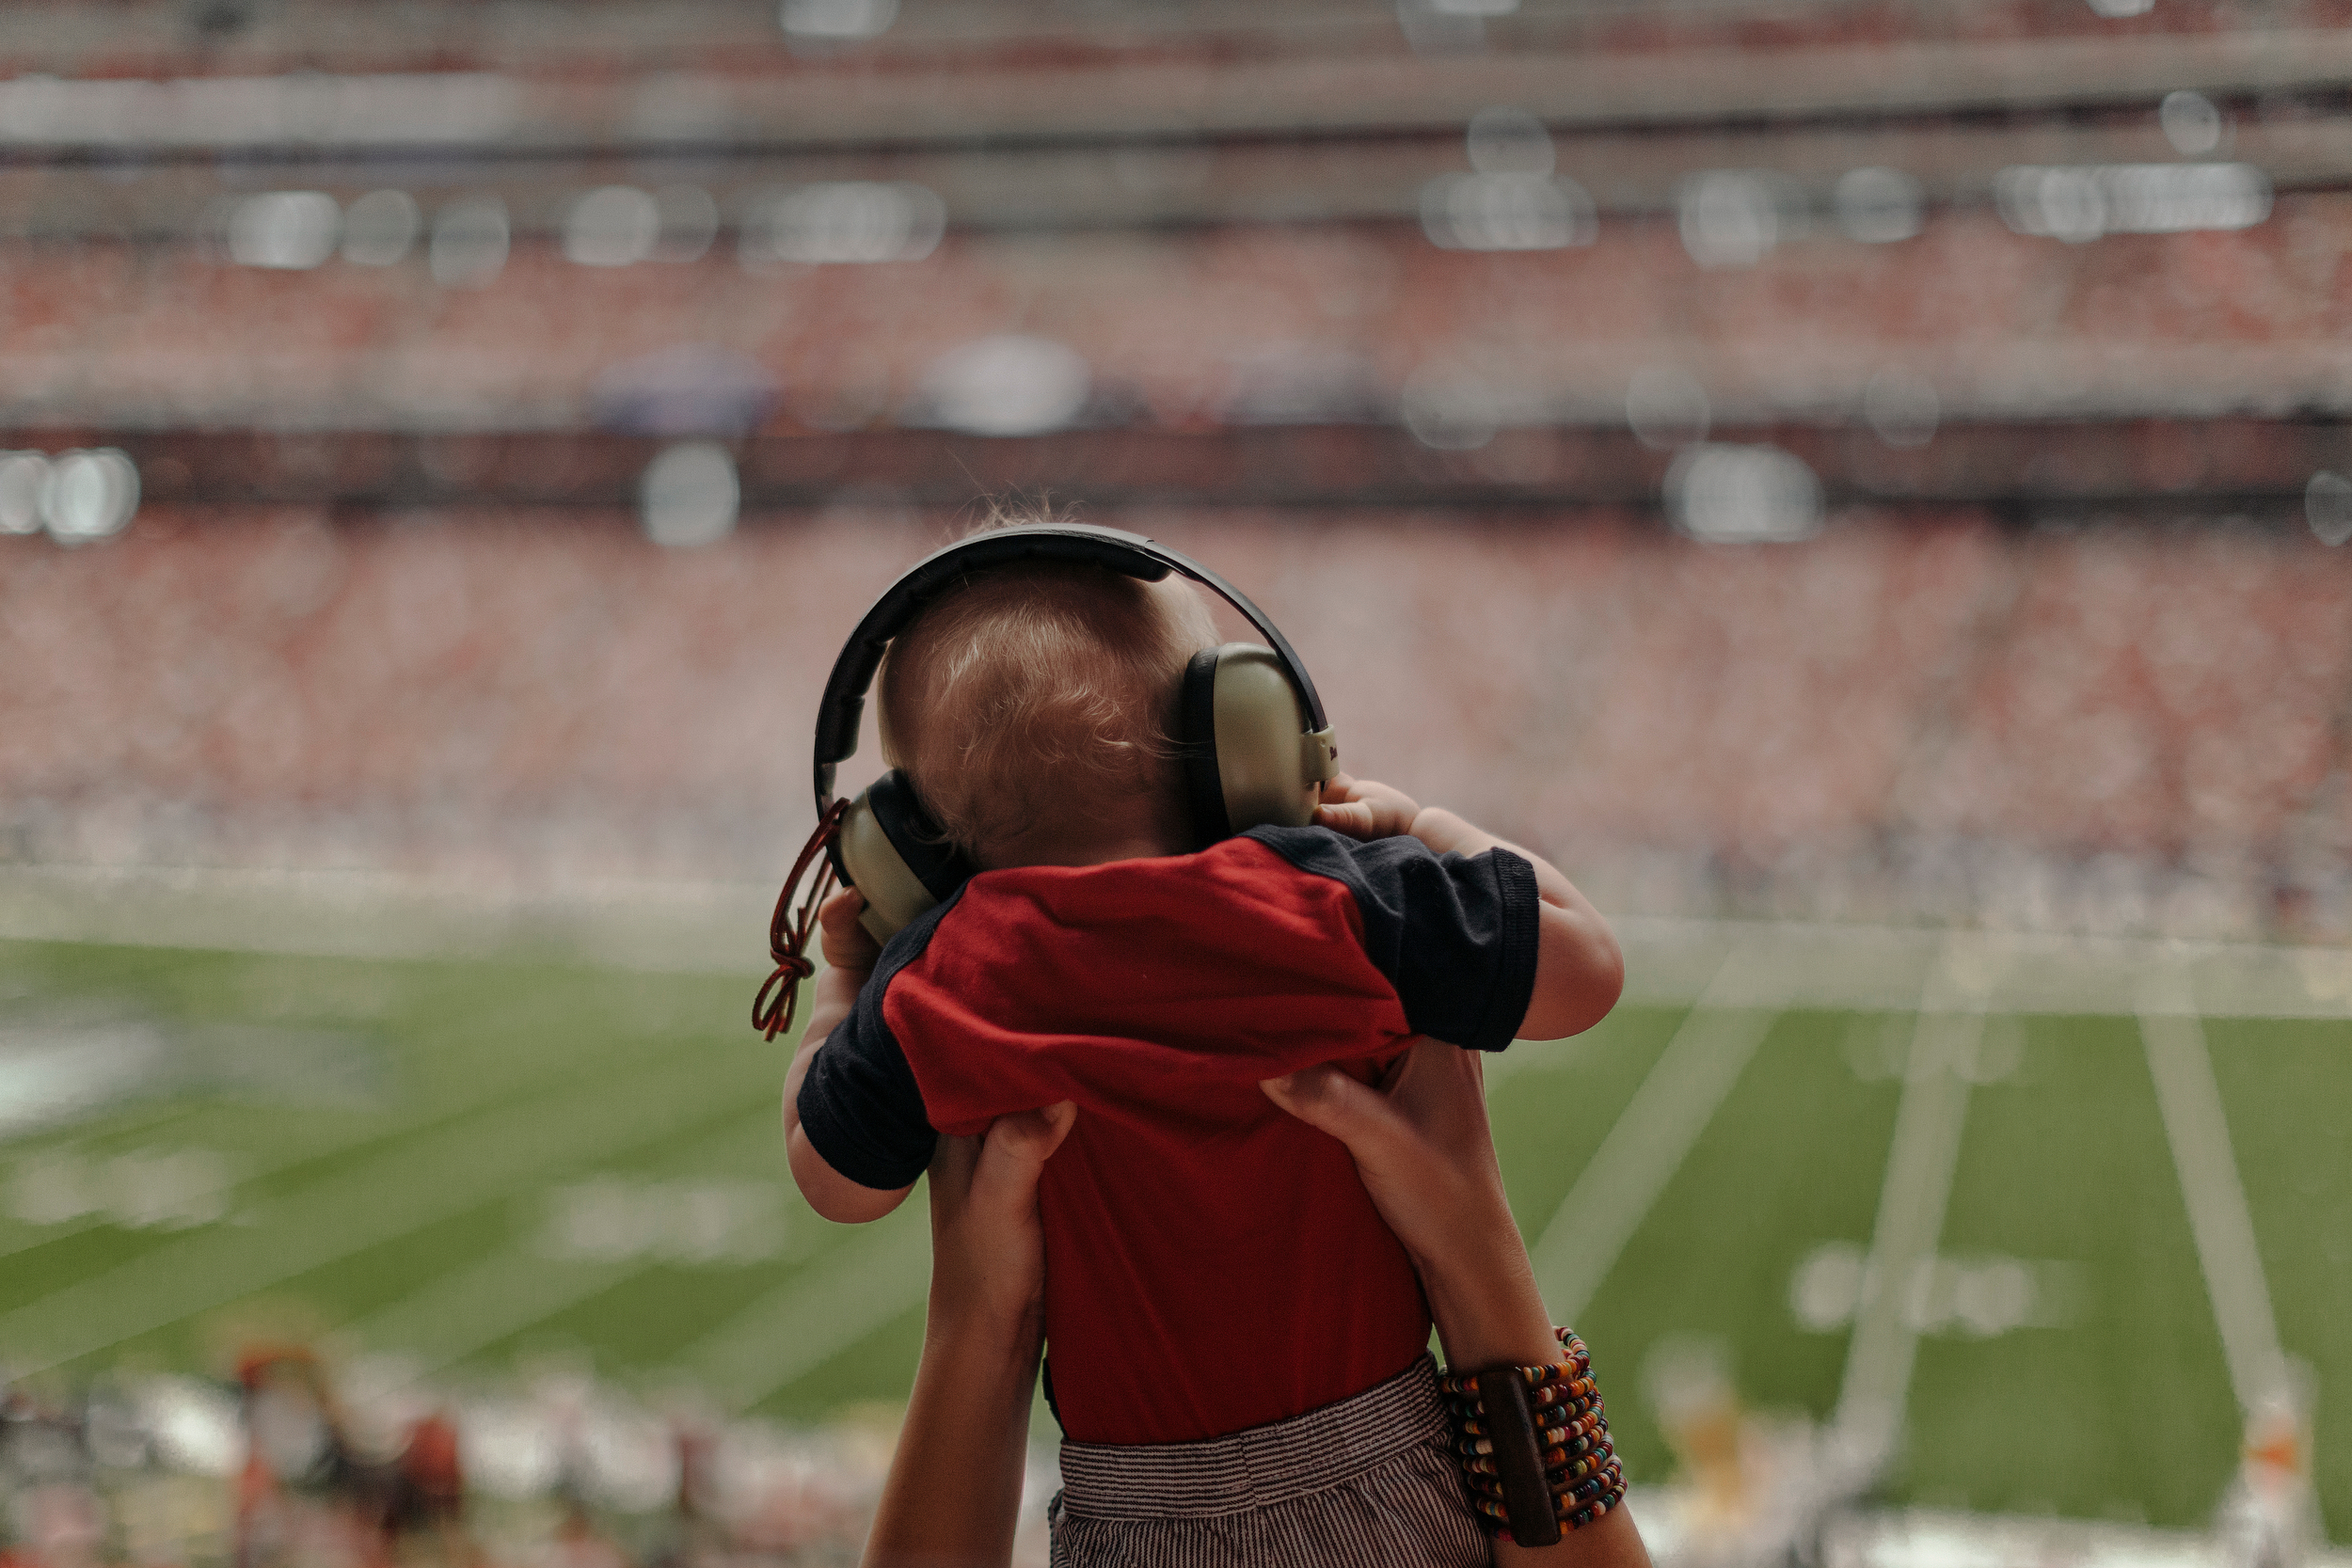 A baby watches the game from his mother's arms. Todd Spoth for The New York Times.